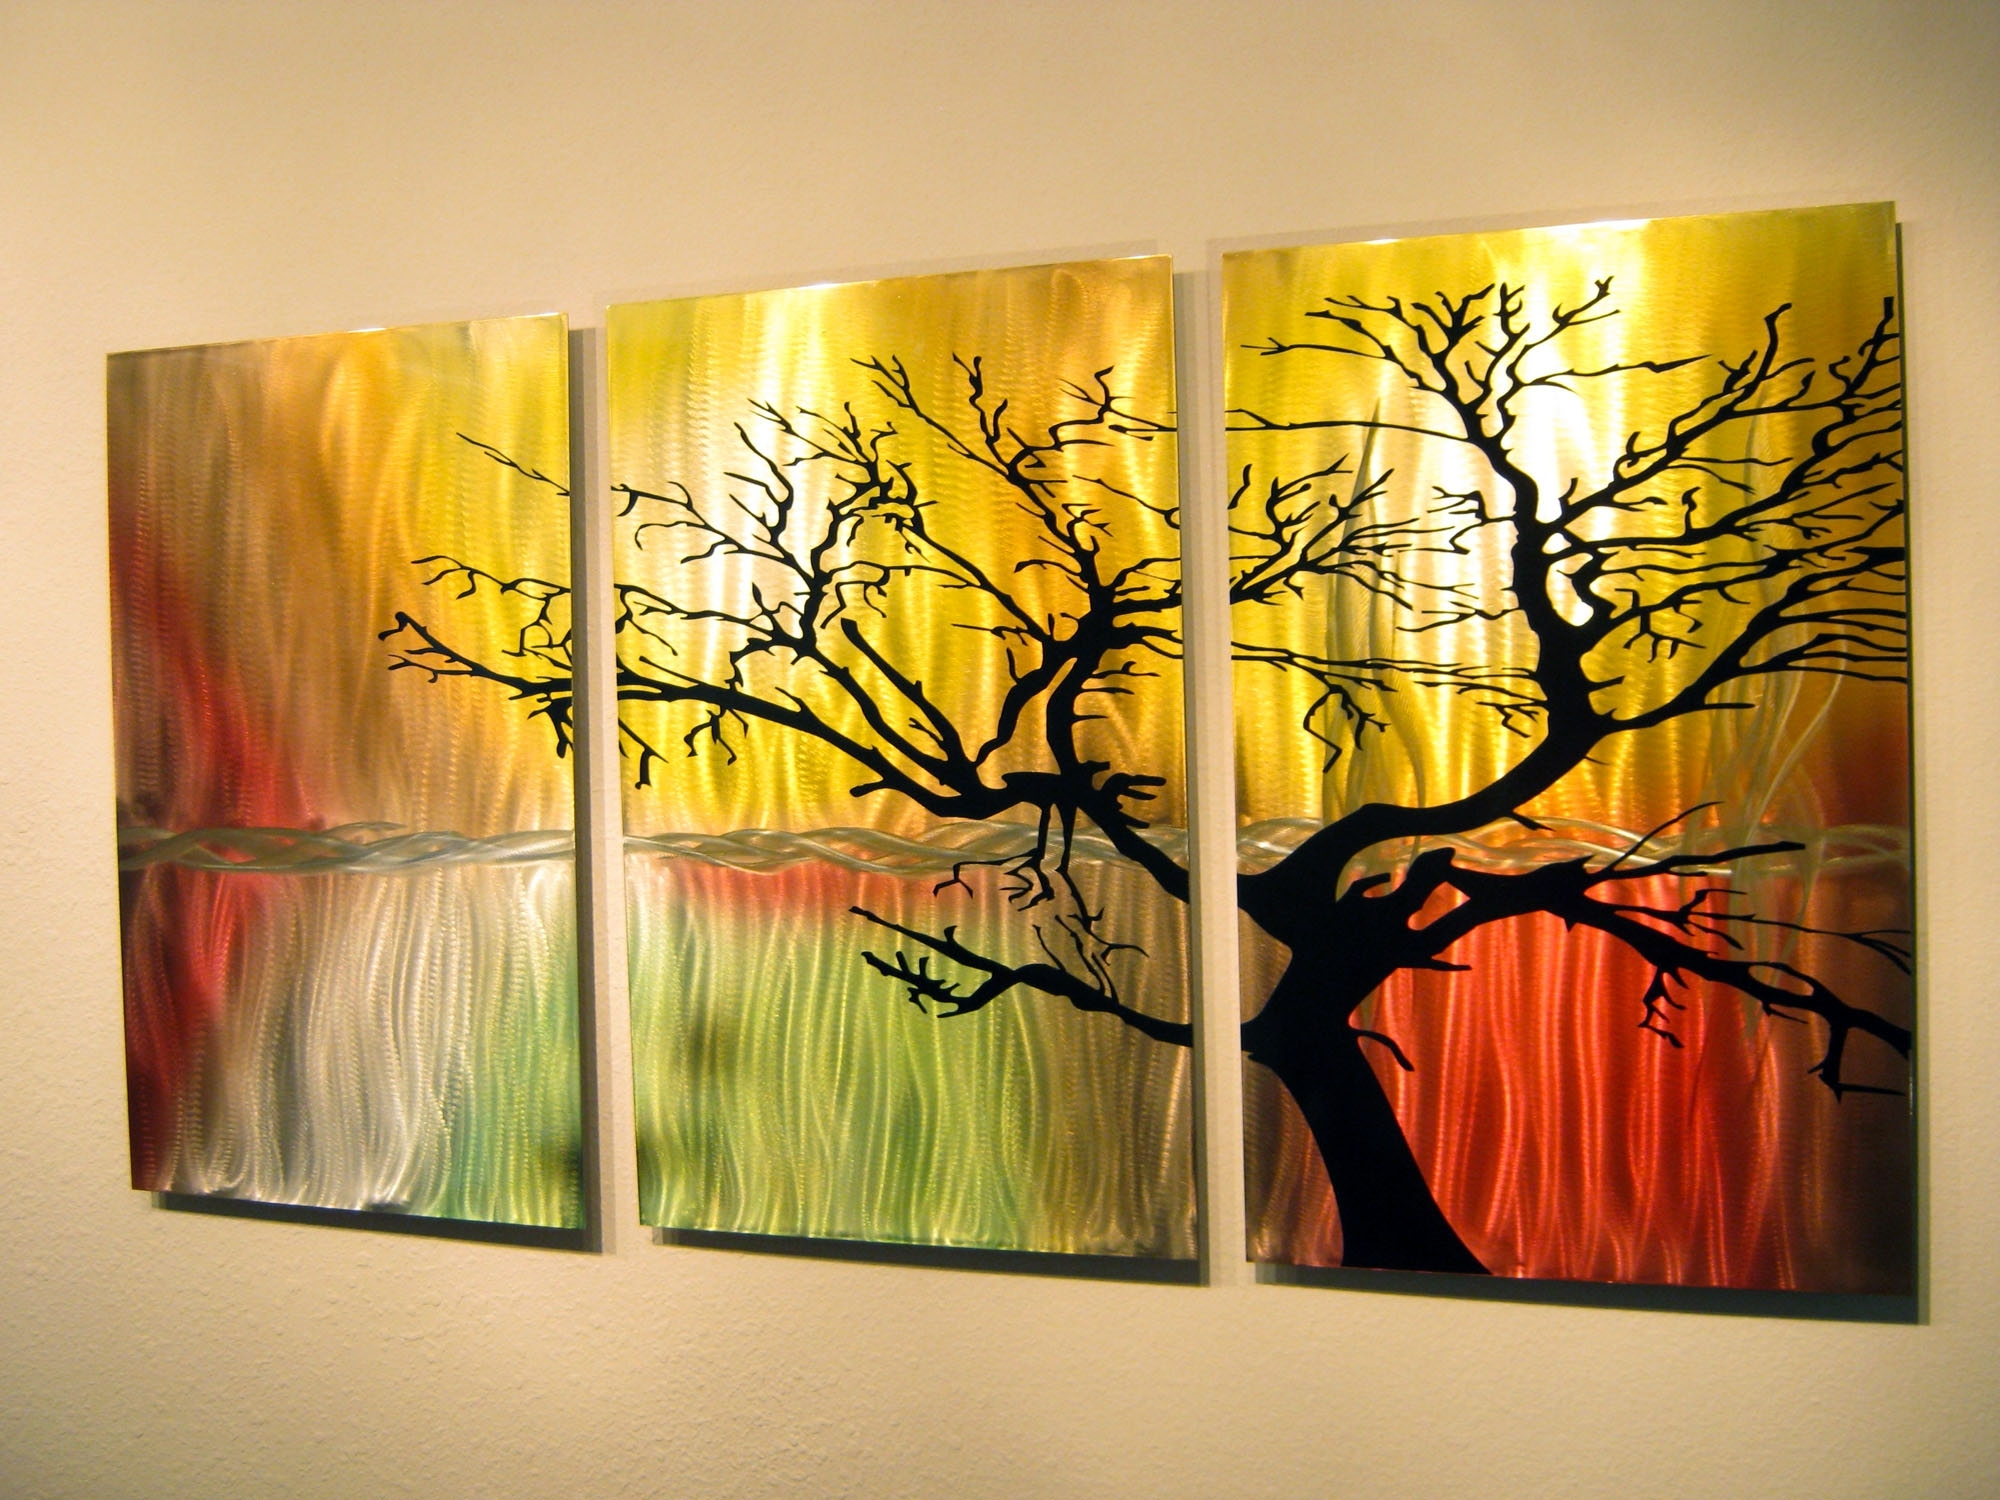 Metal Wall Art Panels Intended For Famous Tree In Silhouette Metal Wall Art Contemporary Modern Decor (View 2 of 15)